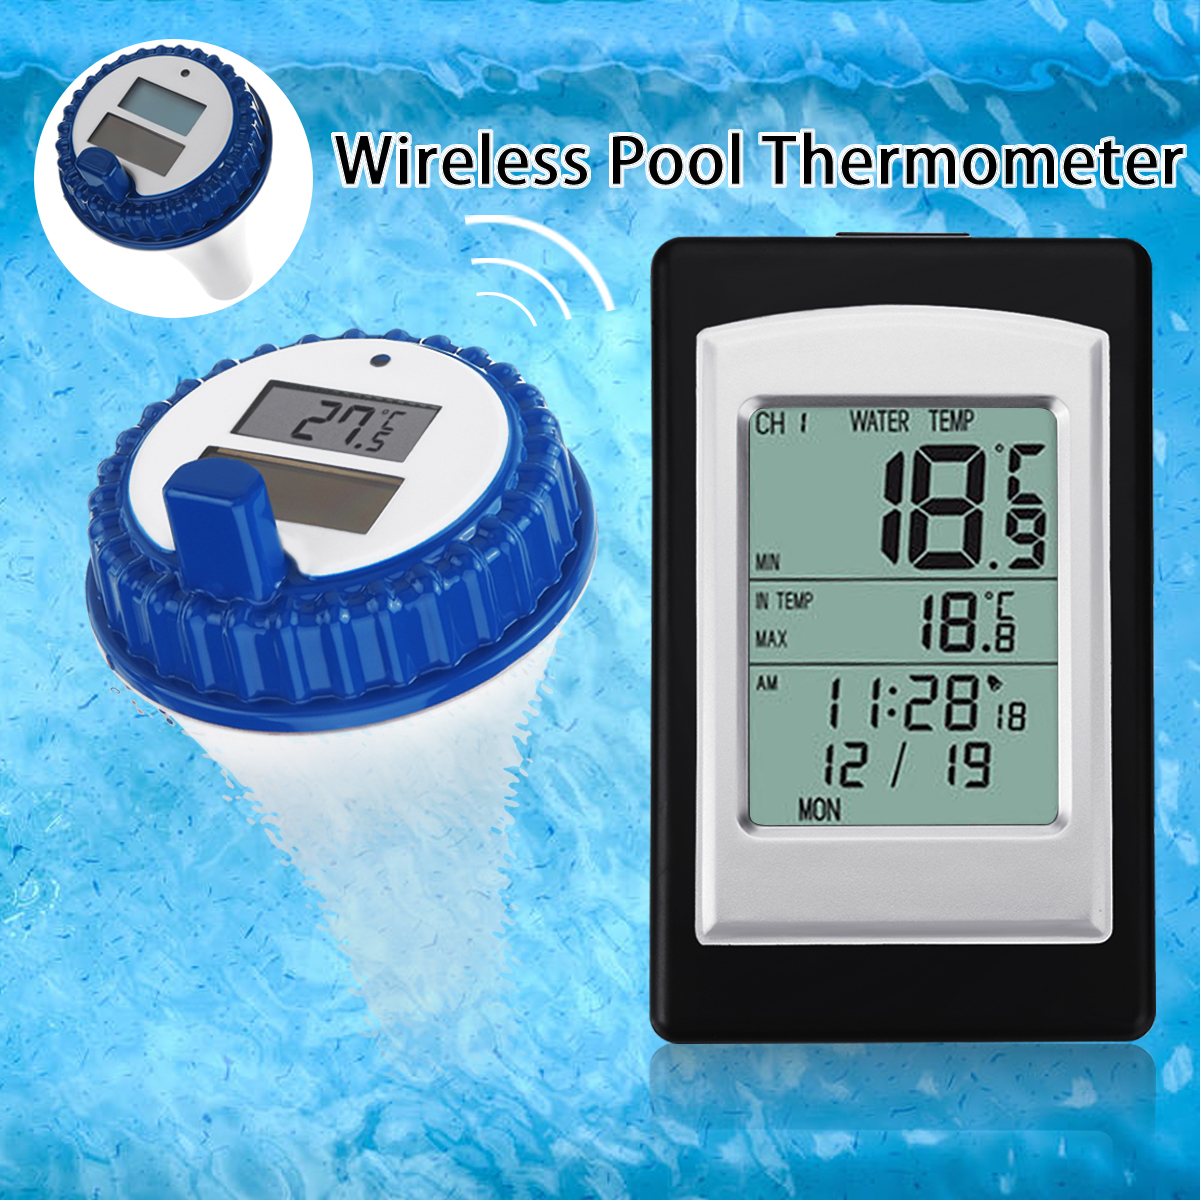 Professional Digital Wireless Swimming Pool Thermometer SPA Floating Temperature Meter With 3 Channels/Time Alarm/CalendarProfessional Digital Wireless Swimming Pool Thermometer SPA Floating Temperature Meter With 3 Channels/Time Alarm/Calendar